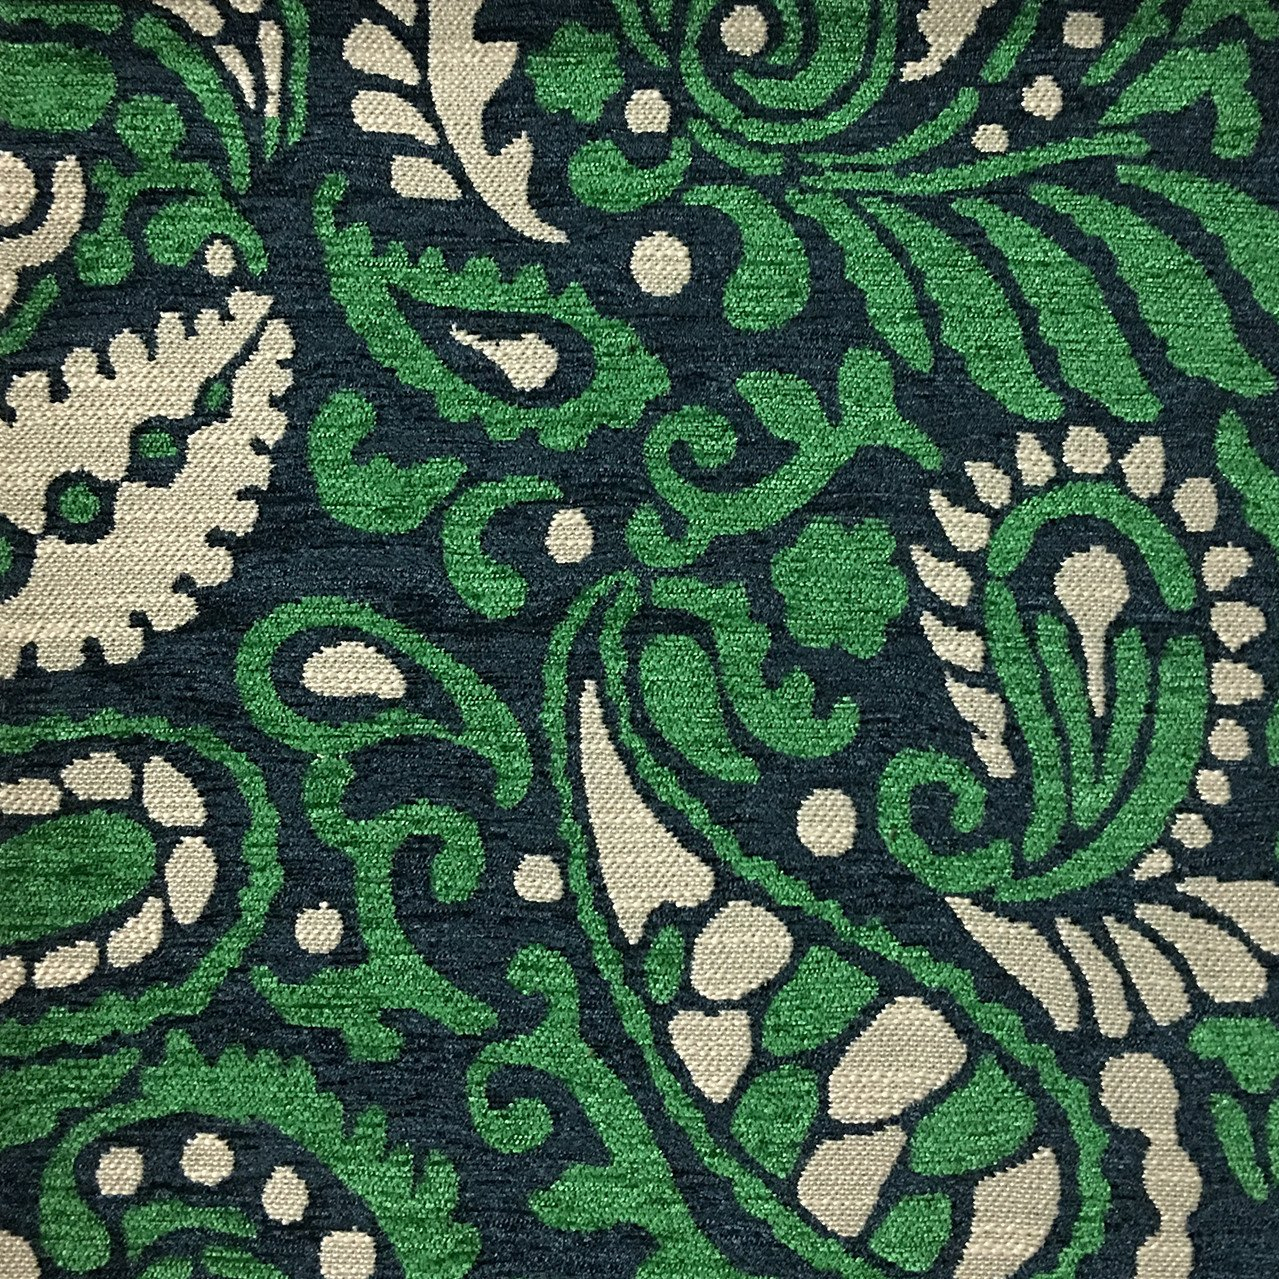 Sydney modern paisley pattern chenille upholstery fabric for Modern home decor fabric prints